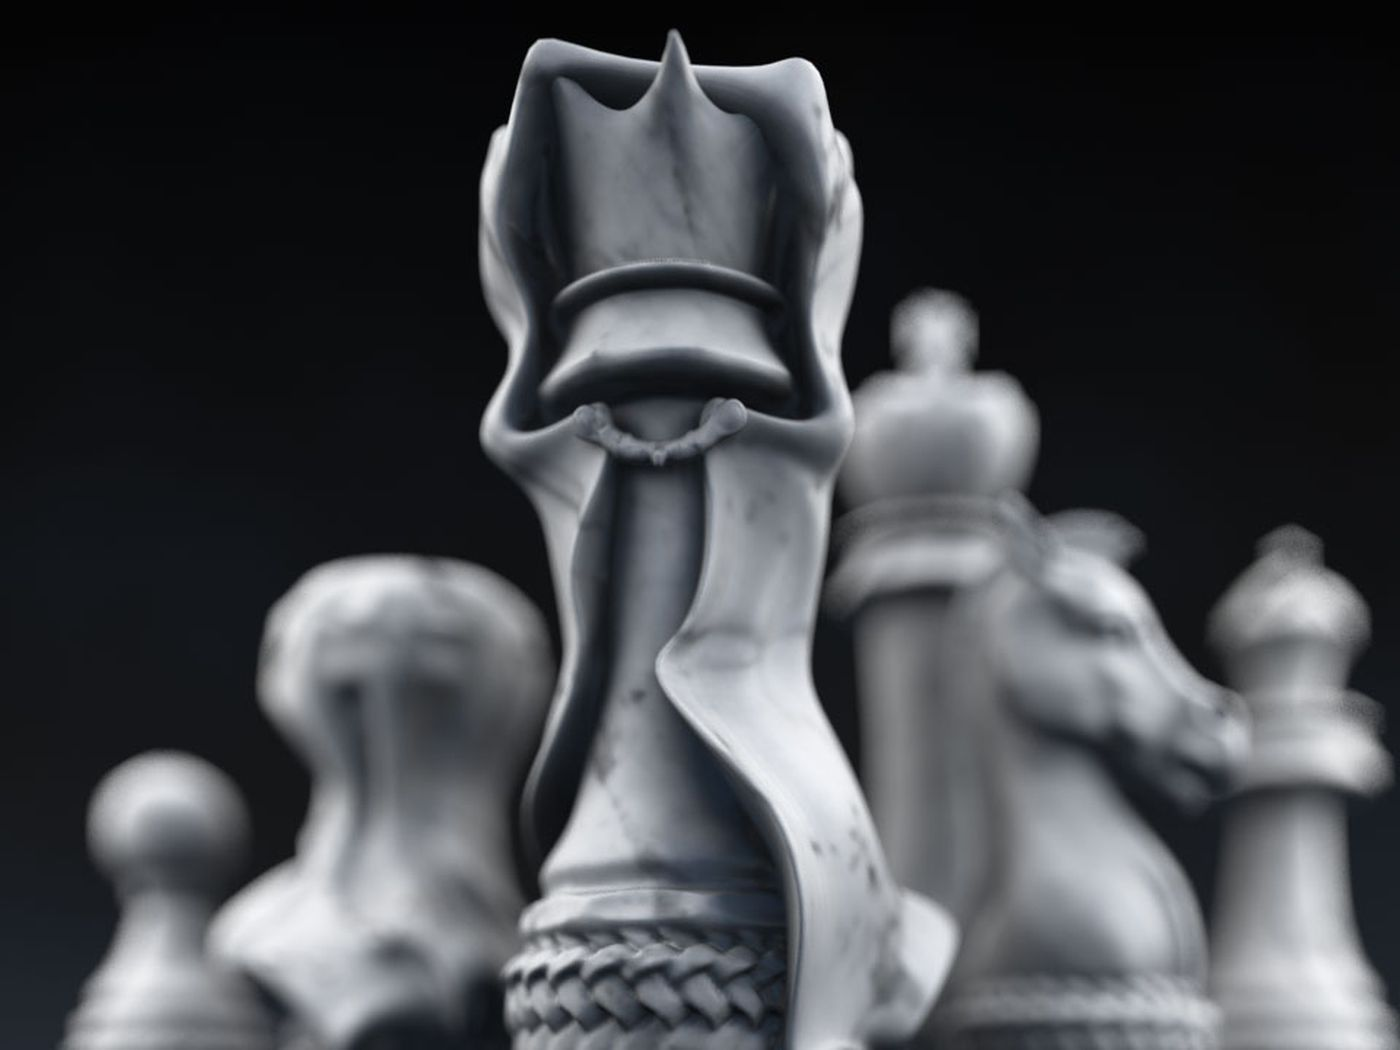 Fixing chess: One game developer's redesign of a 1,500-year